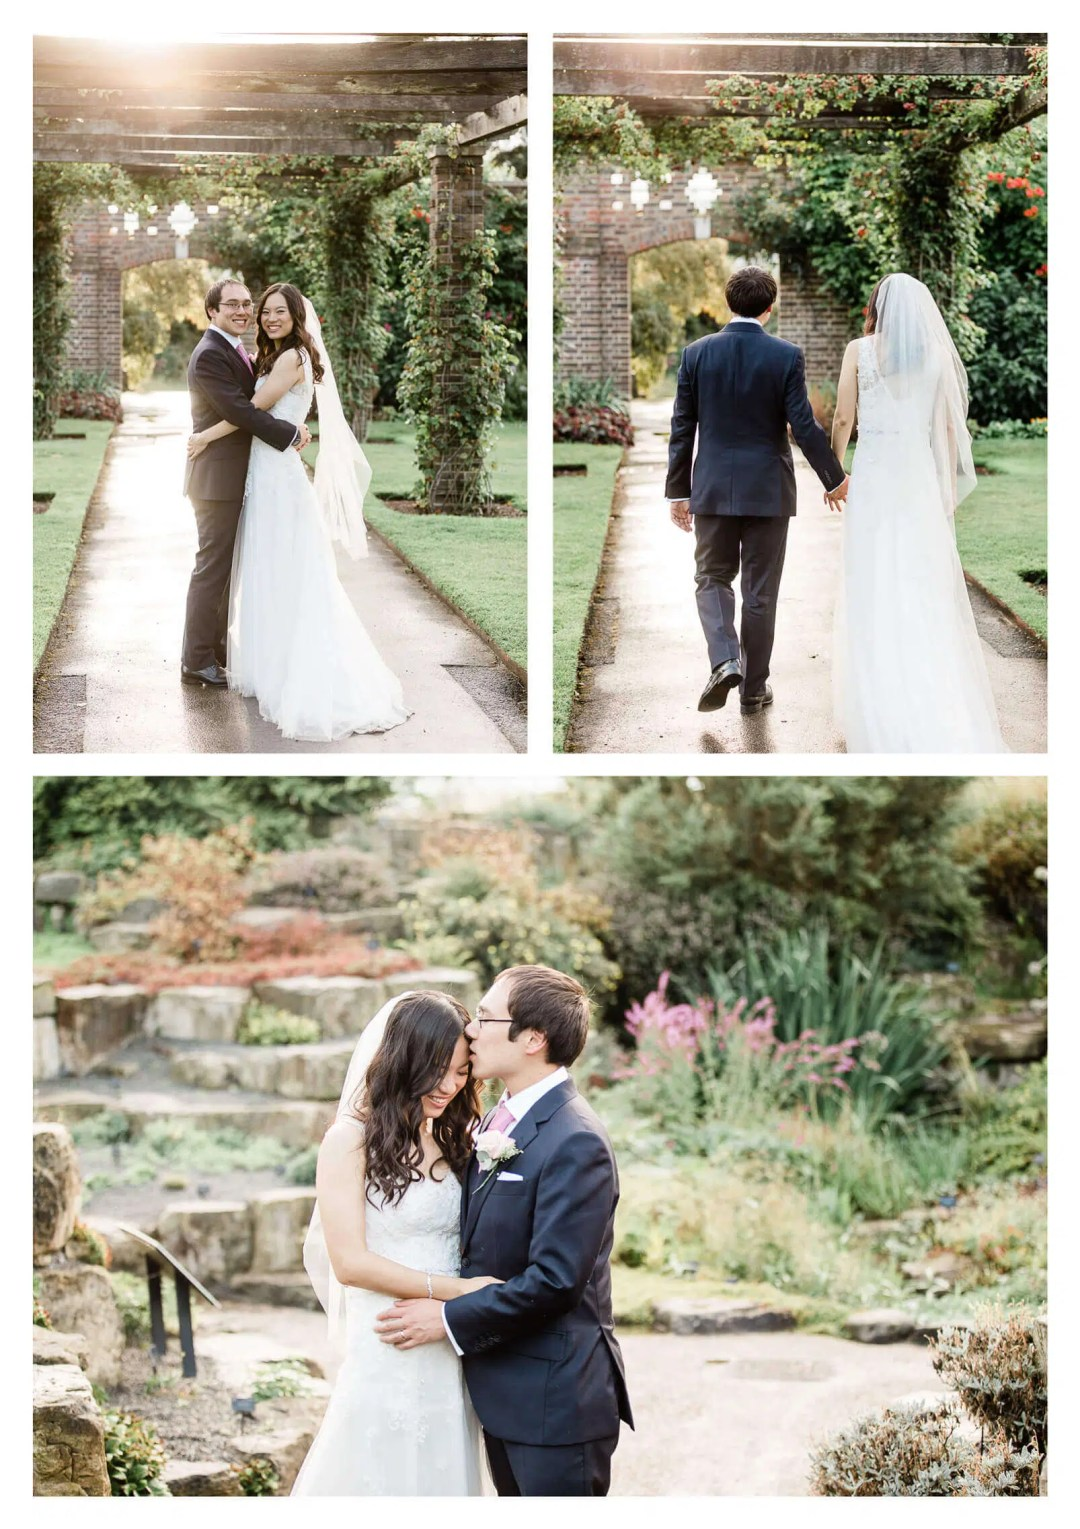 Wilden Bride wedding dress couple portraits at Kew Gardens | London photographer